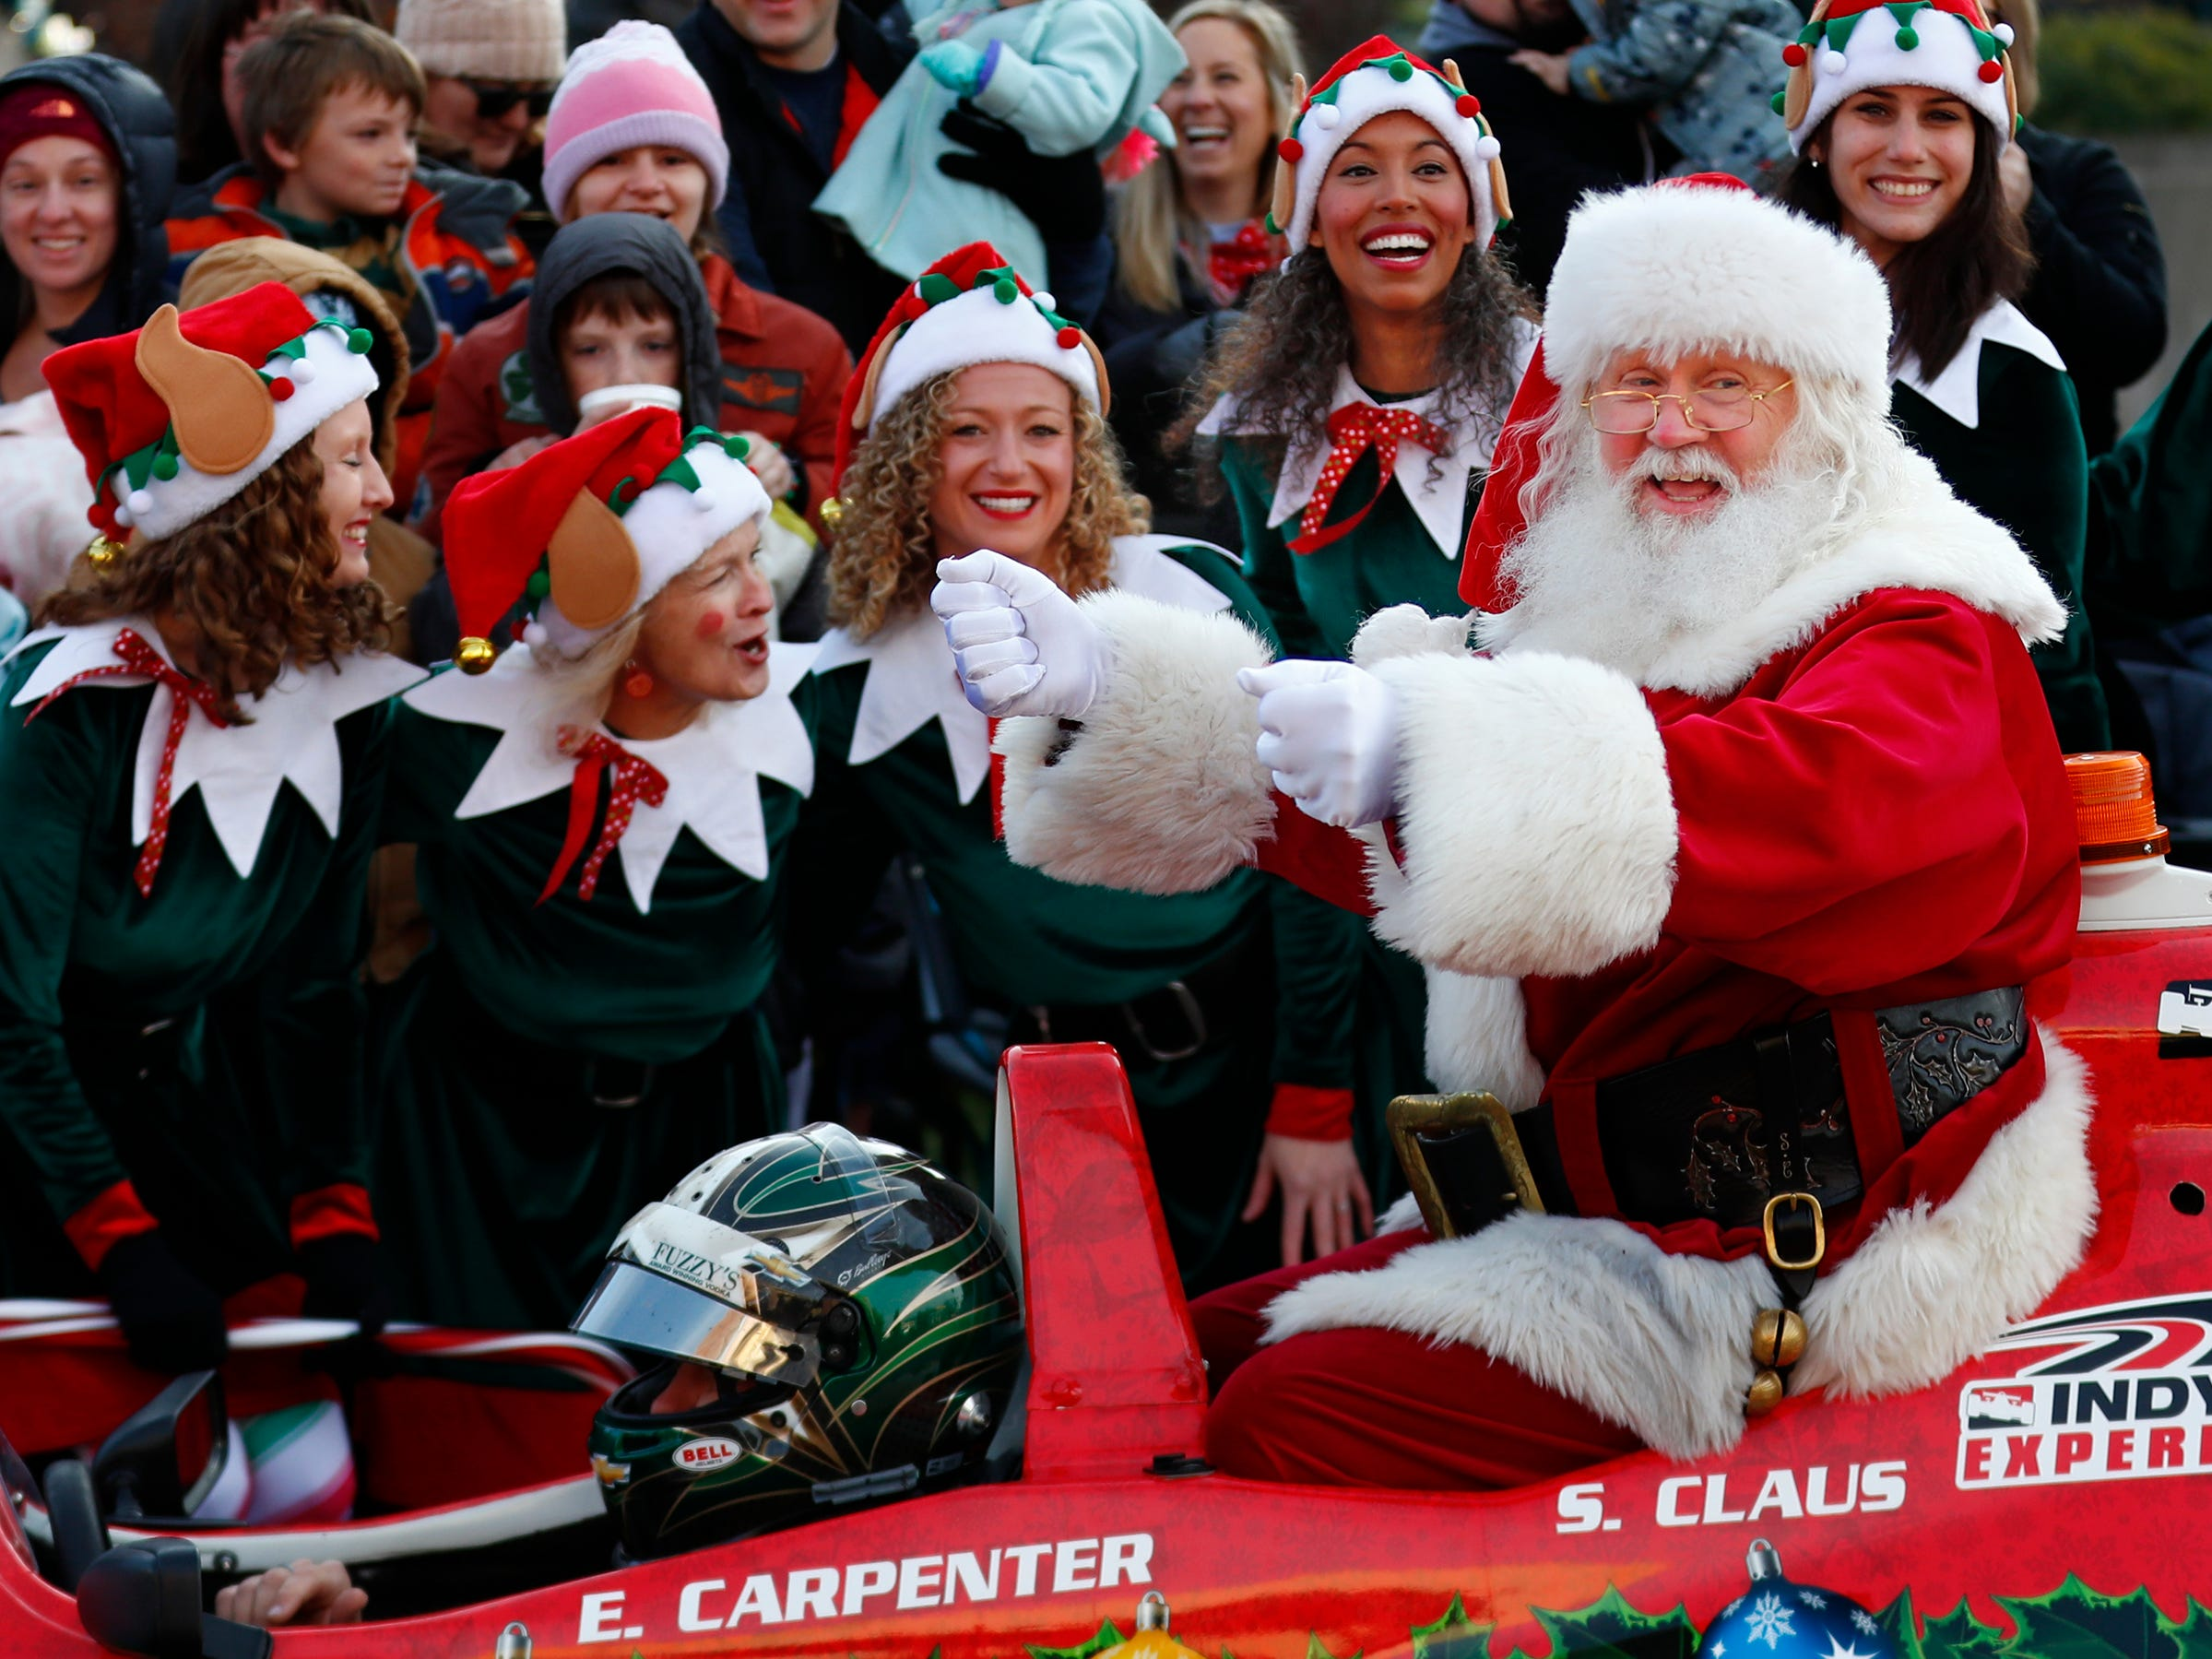 Santa poses for photos after he arrives at the Children's Museum of Indianapolis in an IndyCar driven by racer Ed Carpenter, Friday, Nov. 23, 2018.